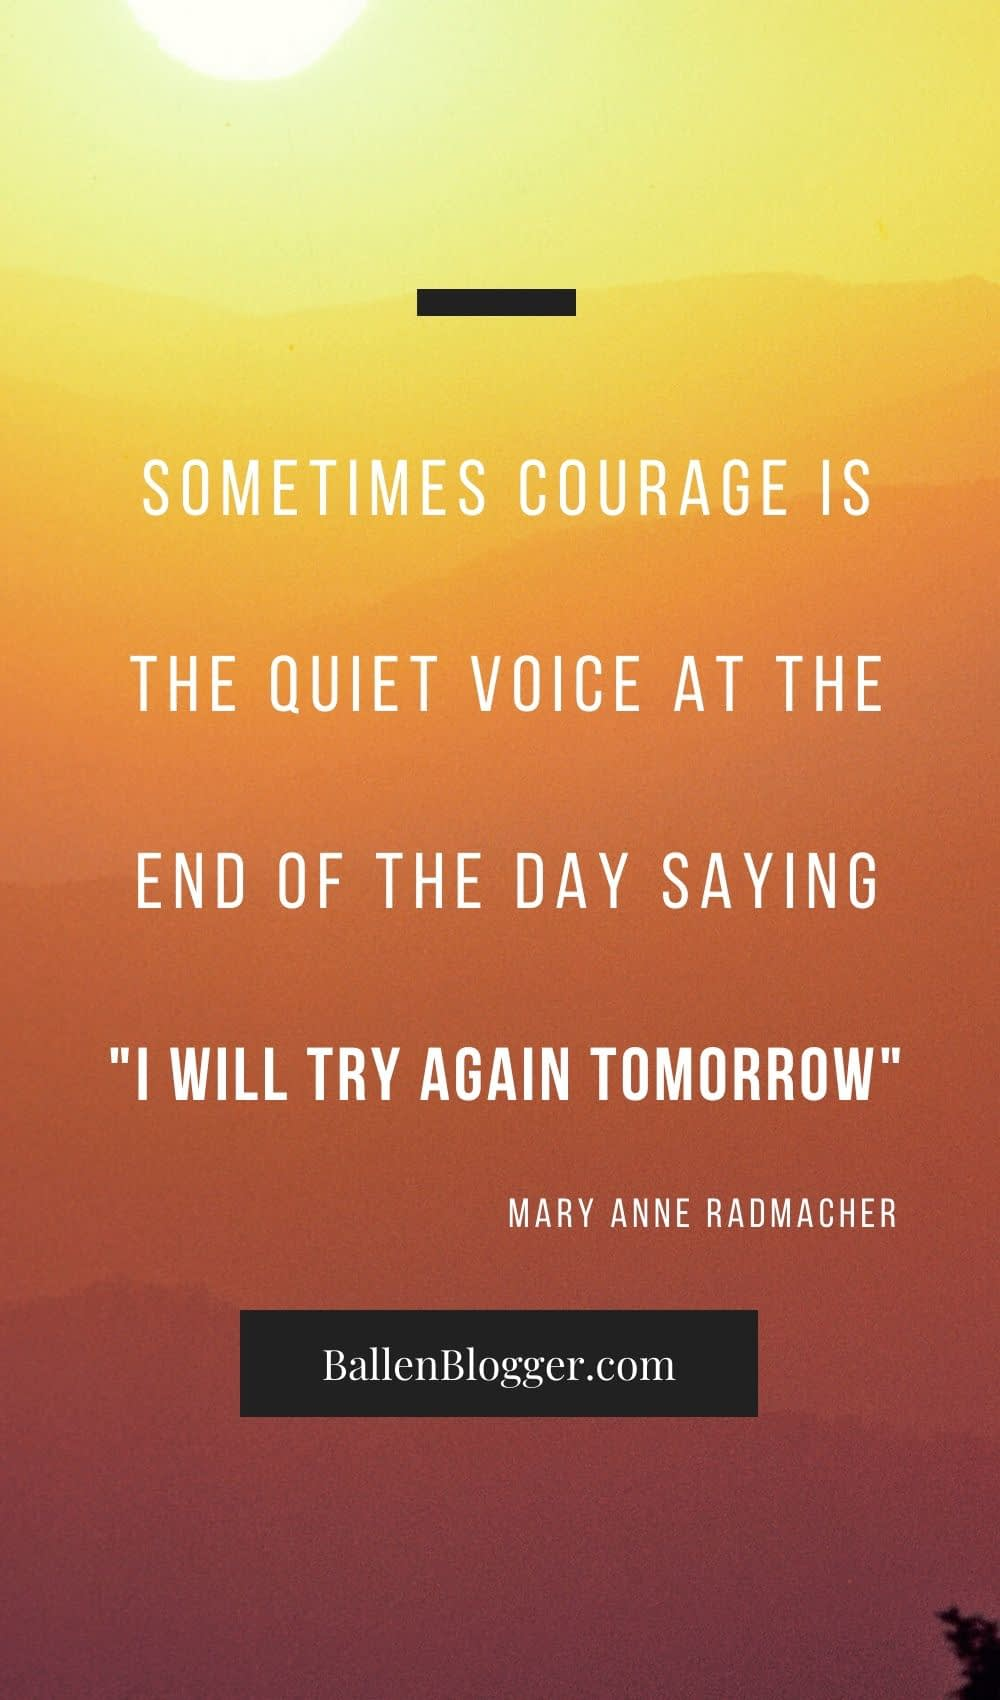 Sometimes courage is the quiet voice at the end of the day saying